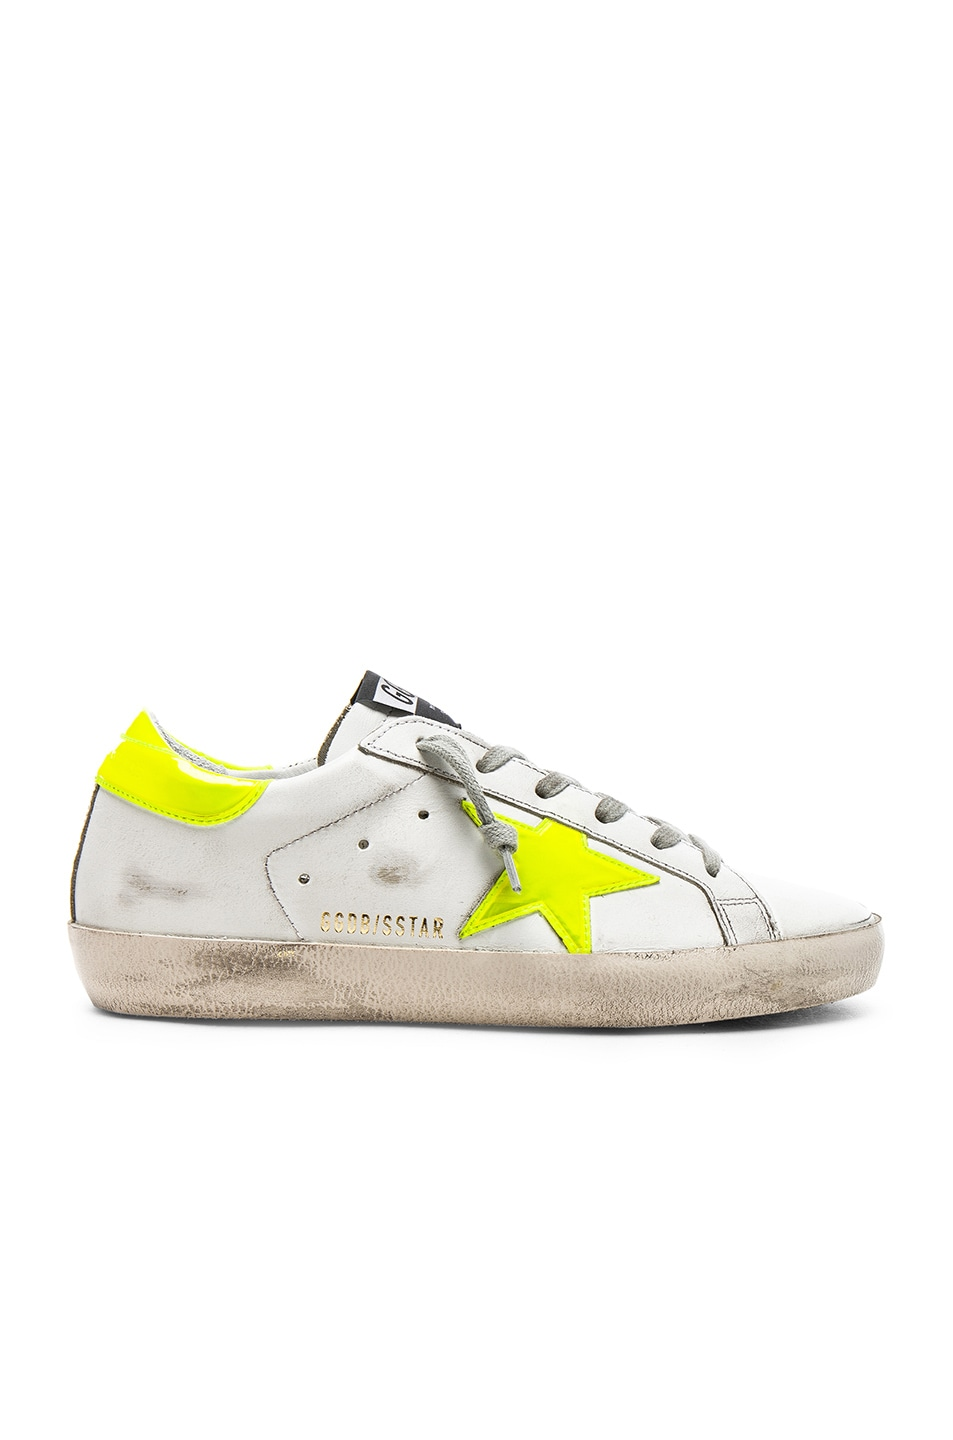 Image 1 of Golden Goose Leather Superstar Sneakers in White & Yellow Fluo Star